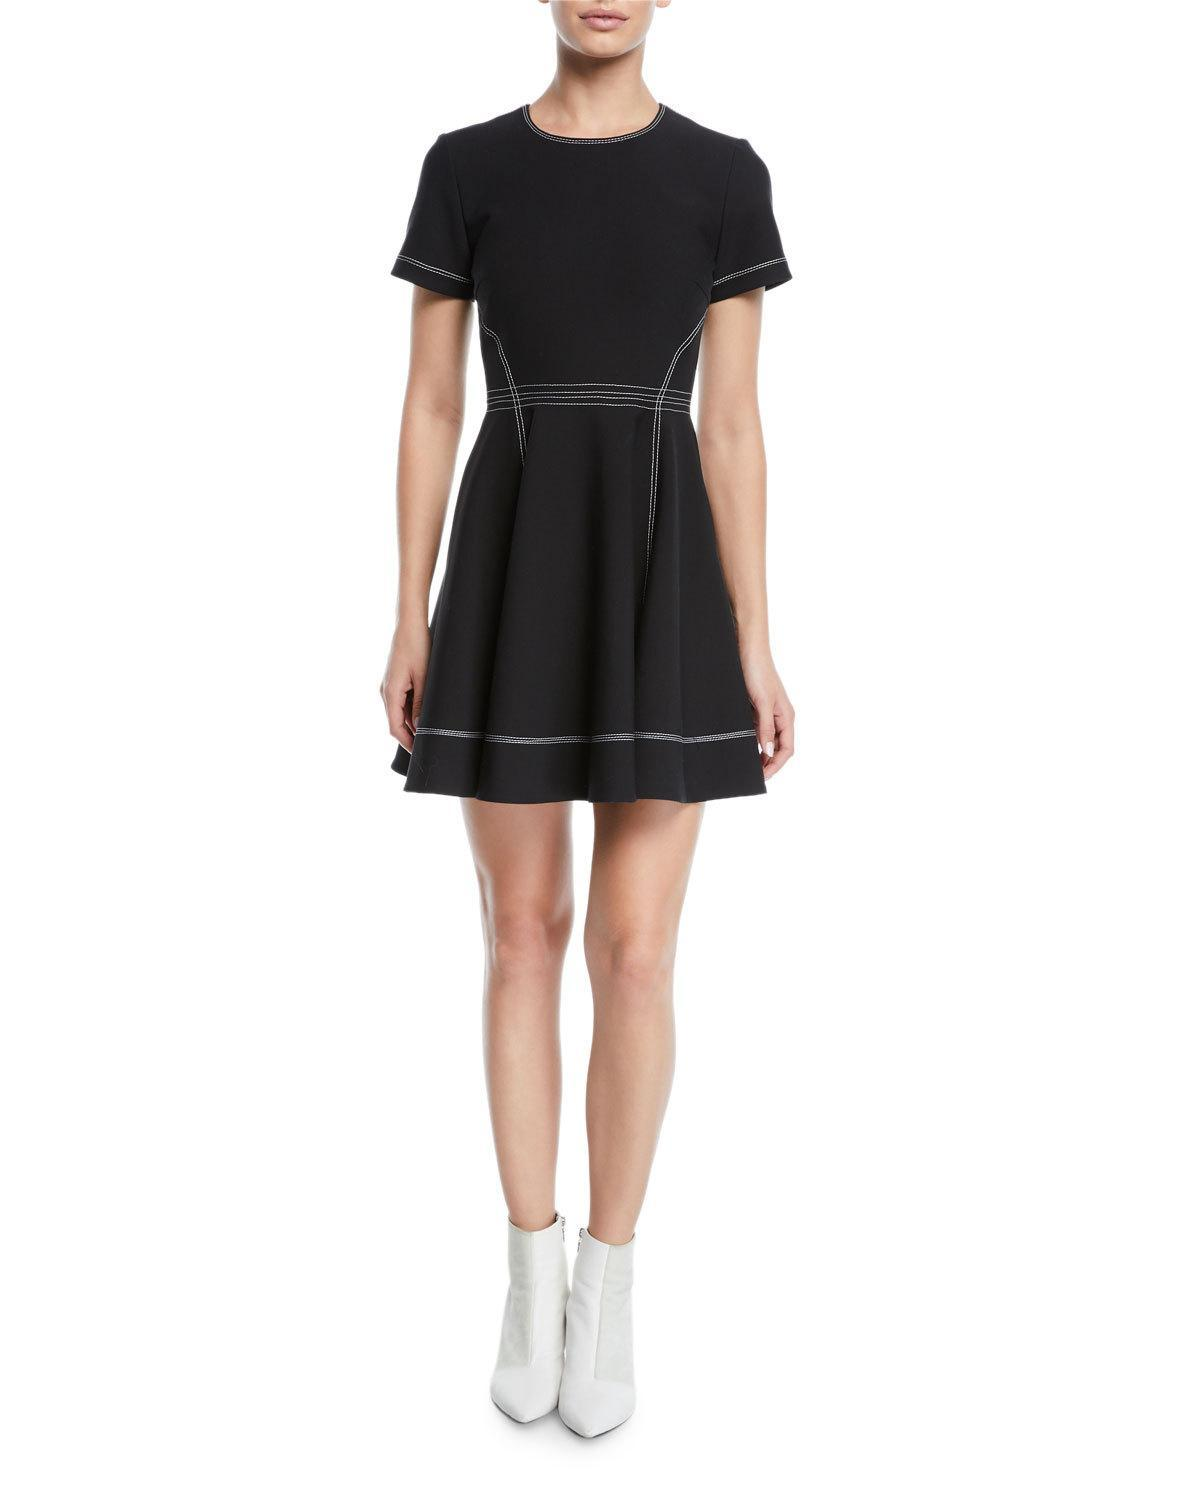 Cinq À Sept Bryce Short Sleeve Fit-and-flare Dress In Black